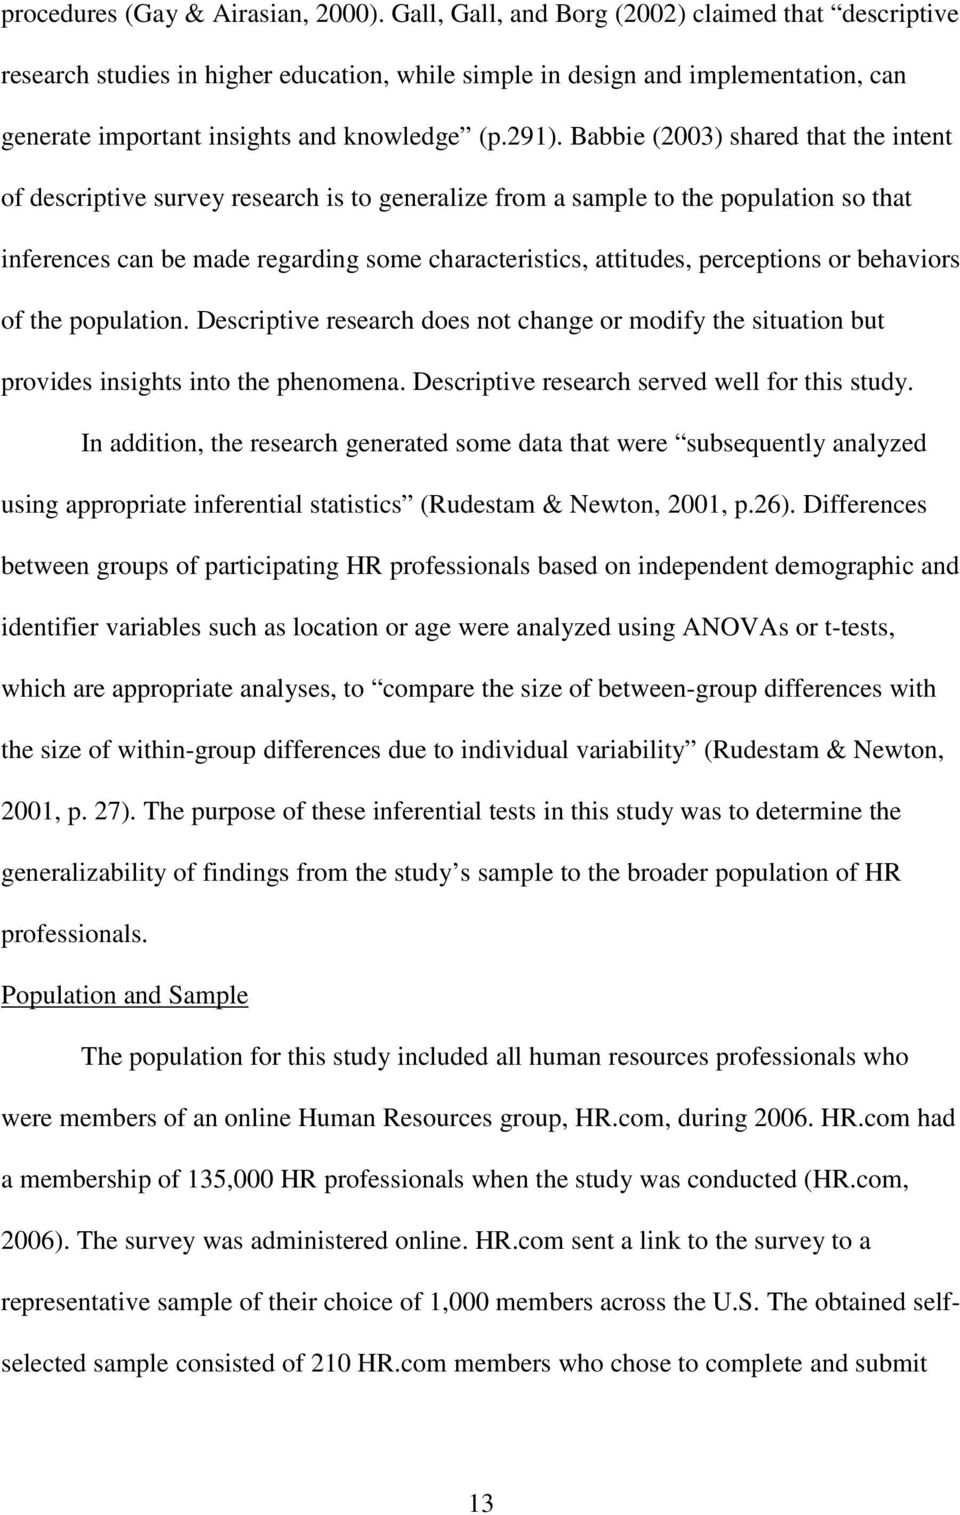 Babbie (2003) shared that the intent of descriptive survey research is to generalize from a sample to the population so that inferences can be made regarding some characteristics, attitudes,